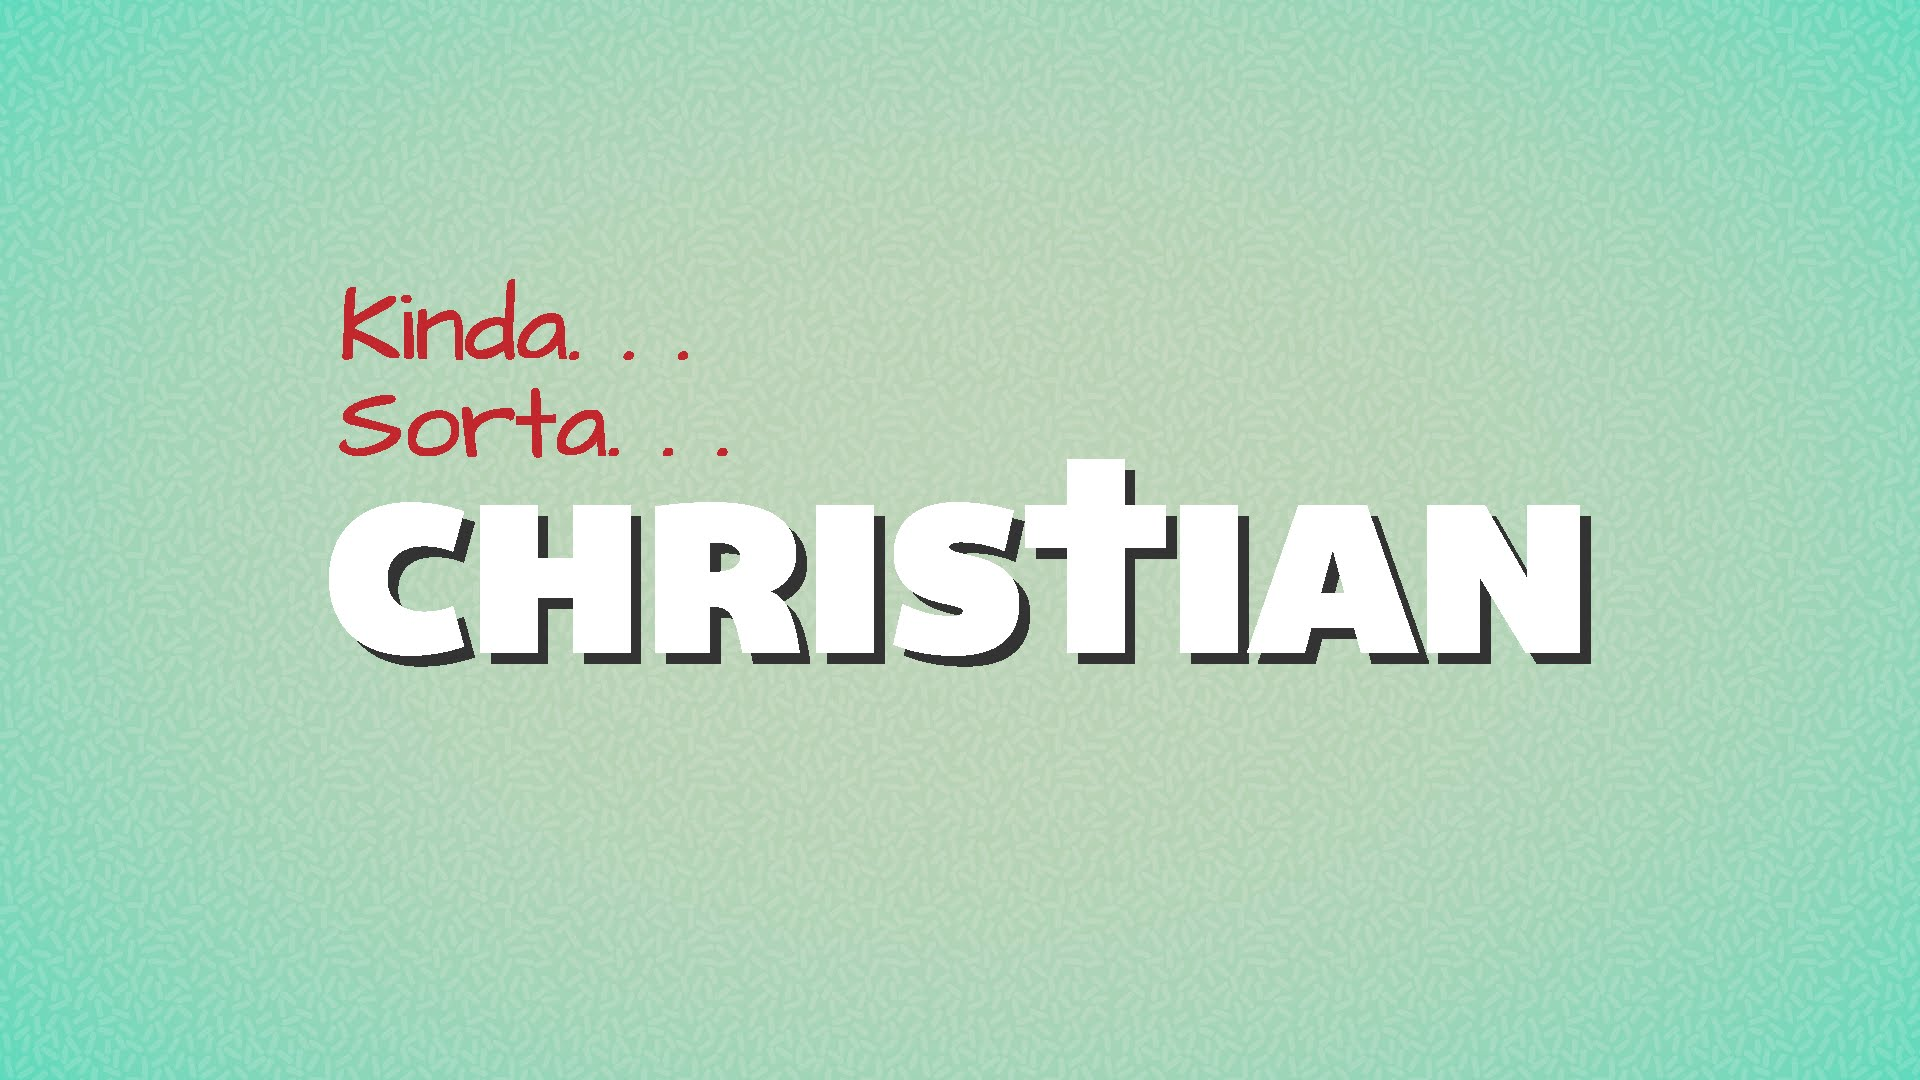 Kinda Sorta Christian: I'm a Christian, but I Don't Know God